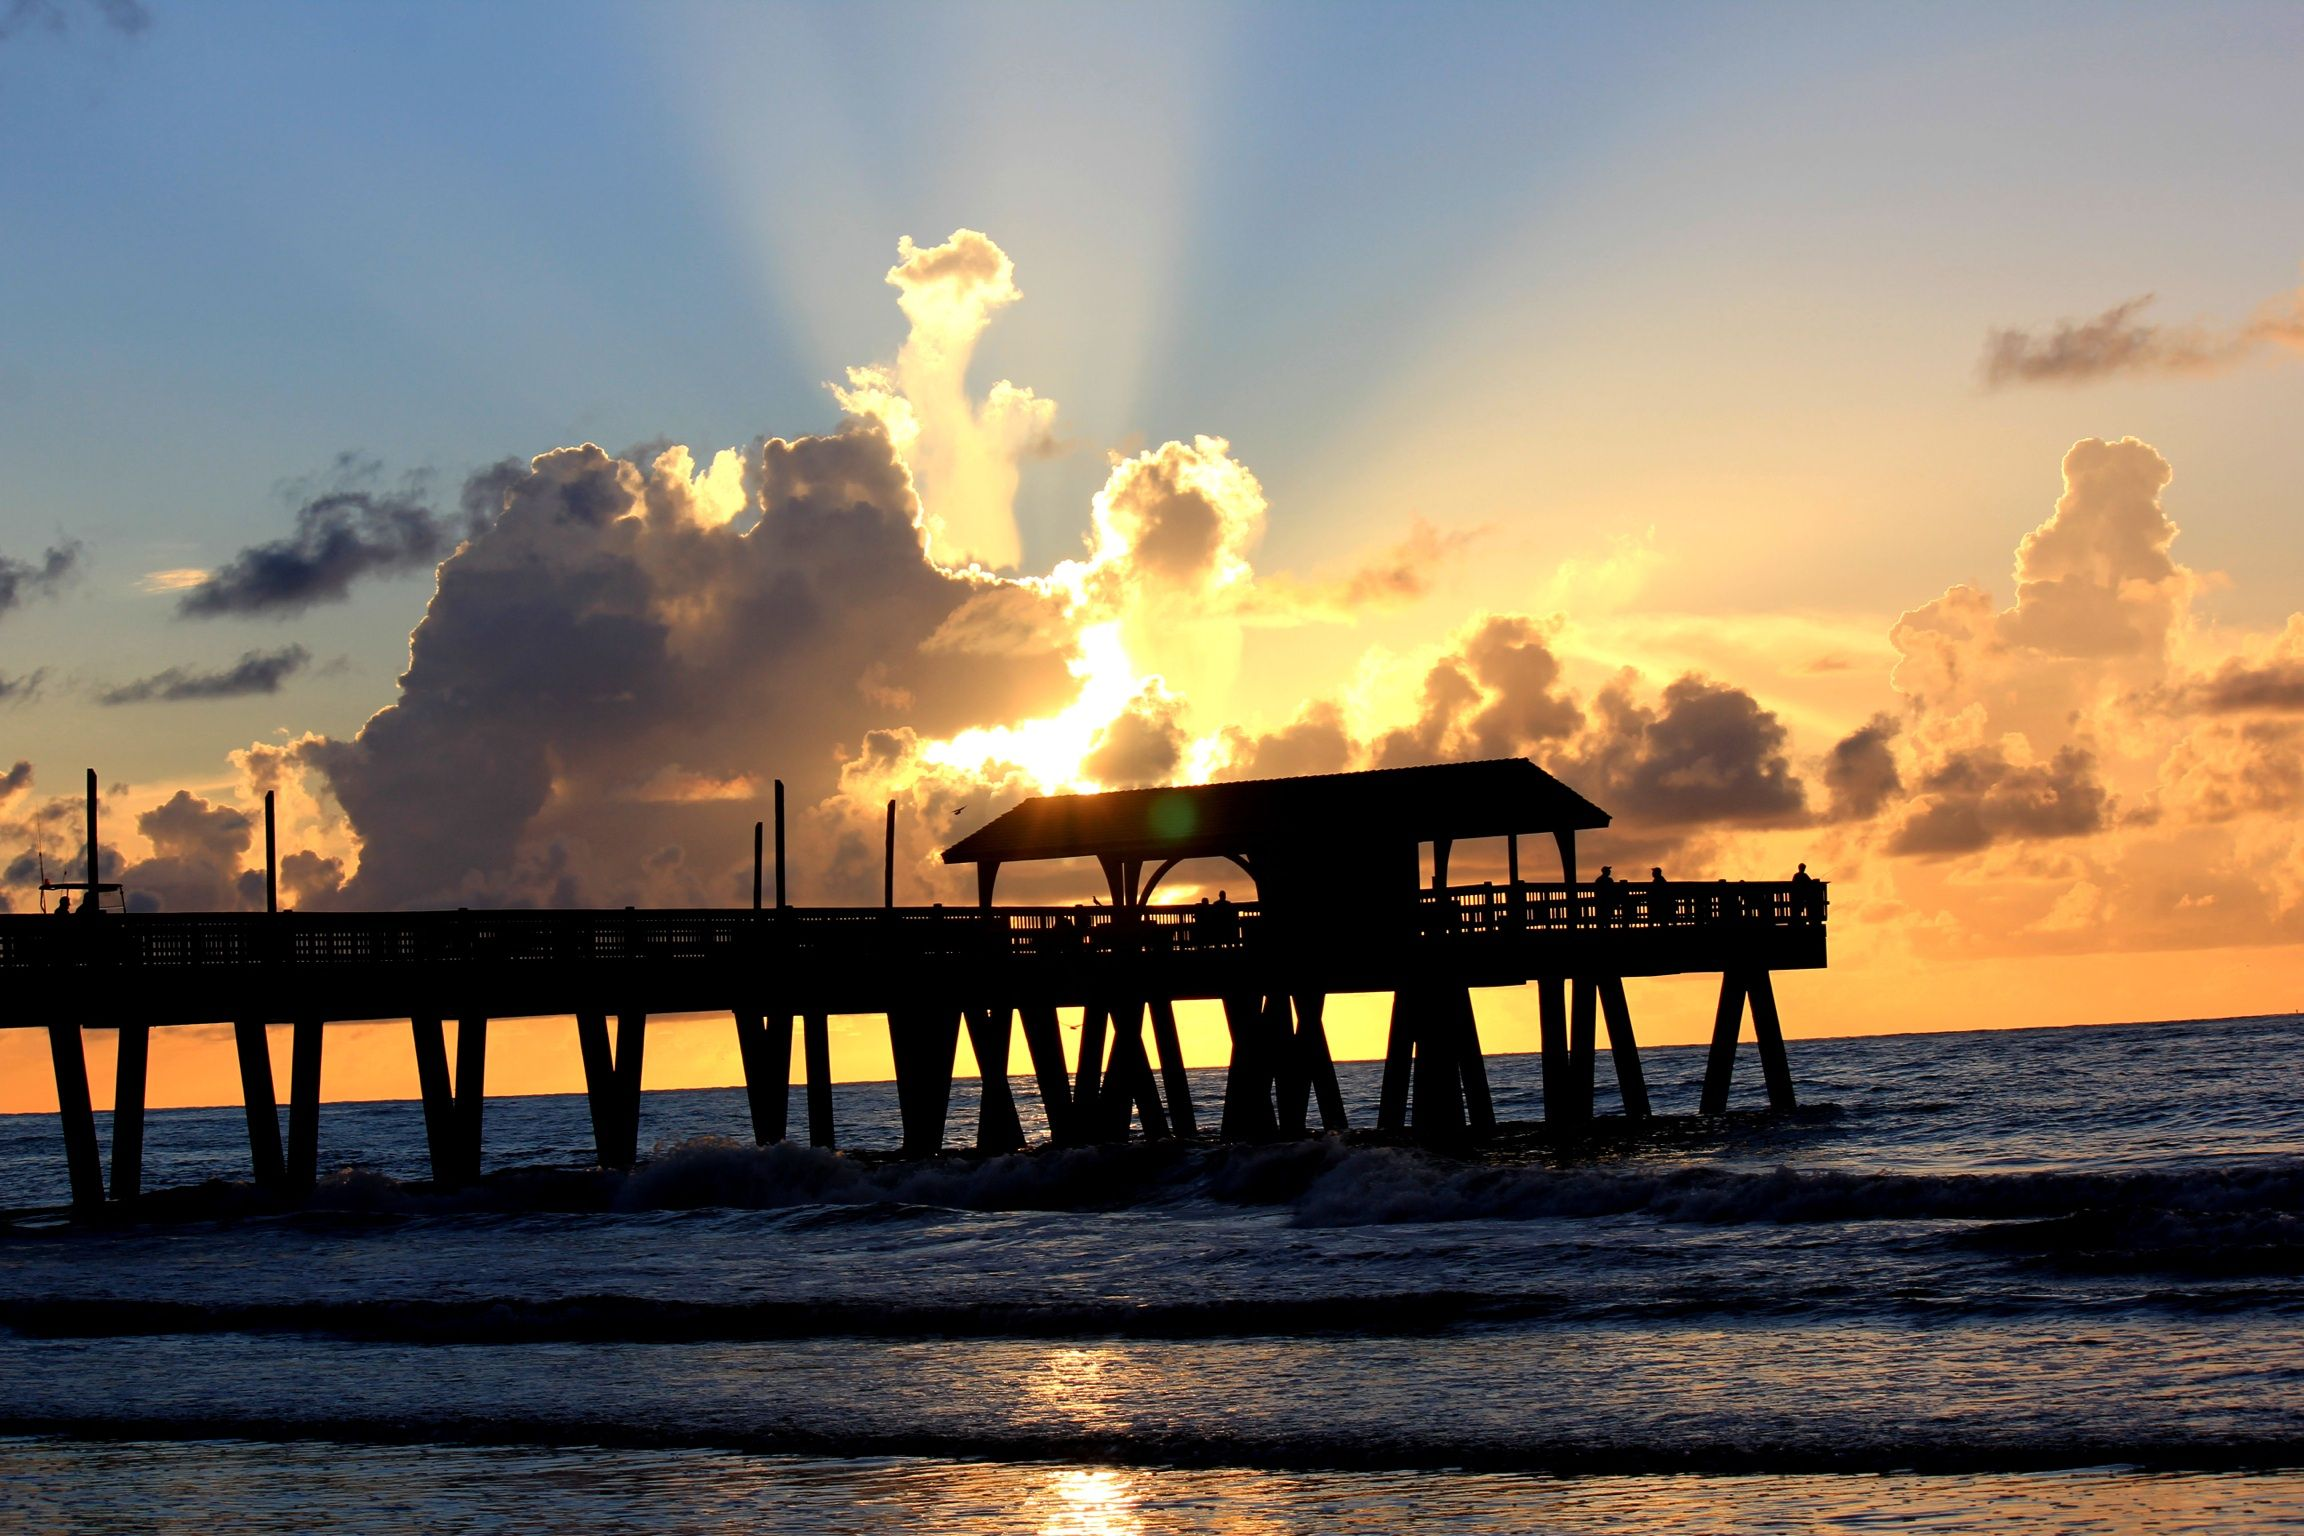 The best picture I've ever taken. Summer 2012 tybee island